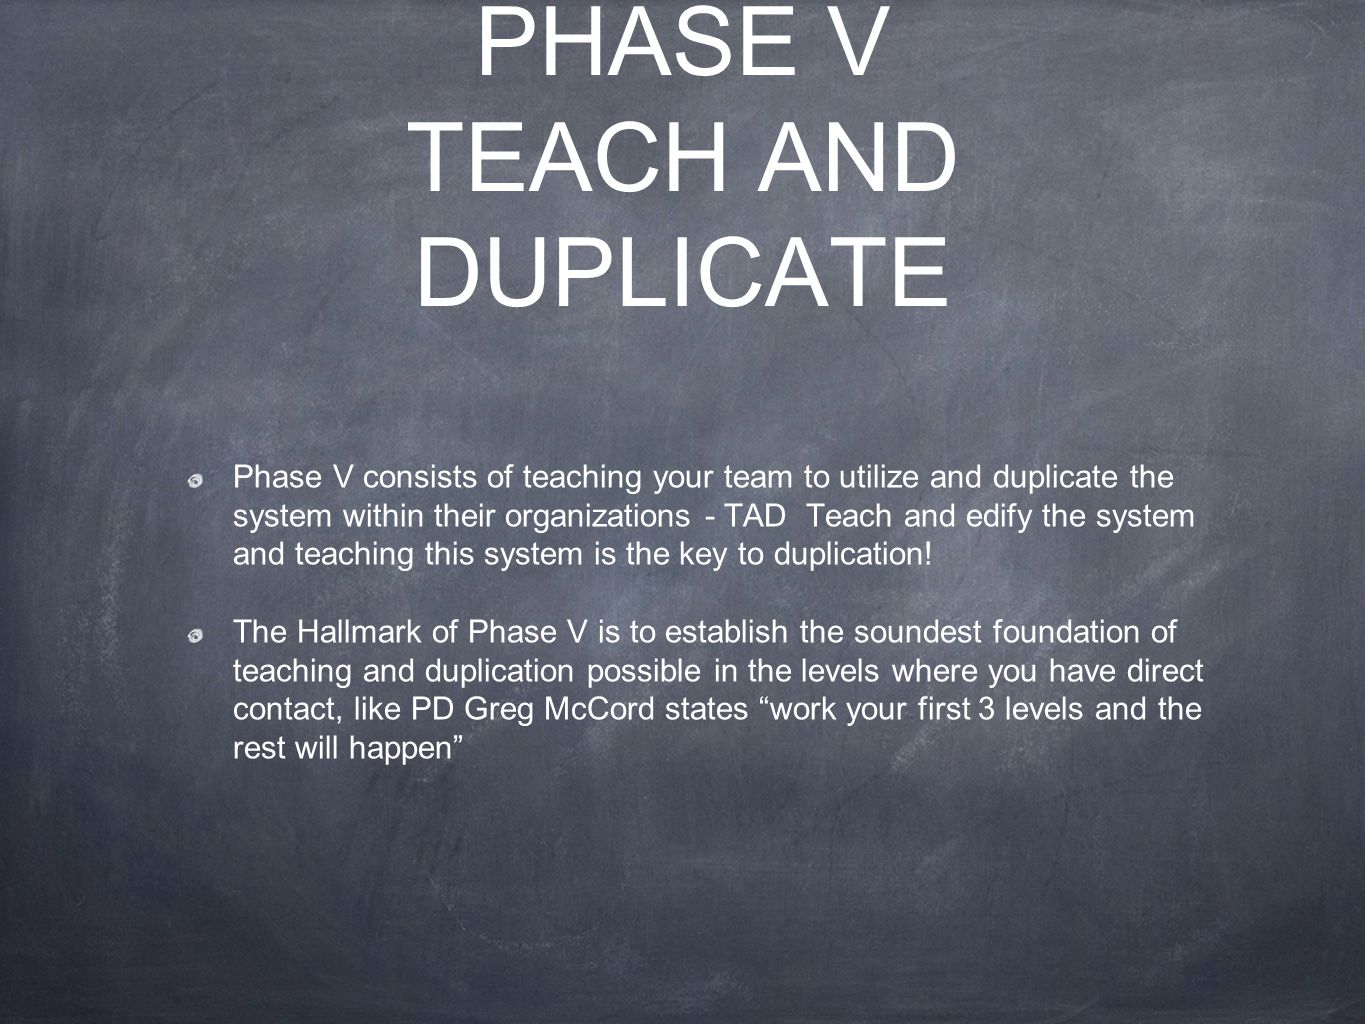 PHASE V TEACH AND DUPLICATE